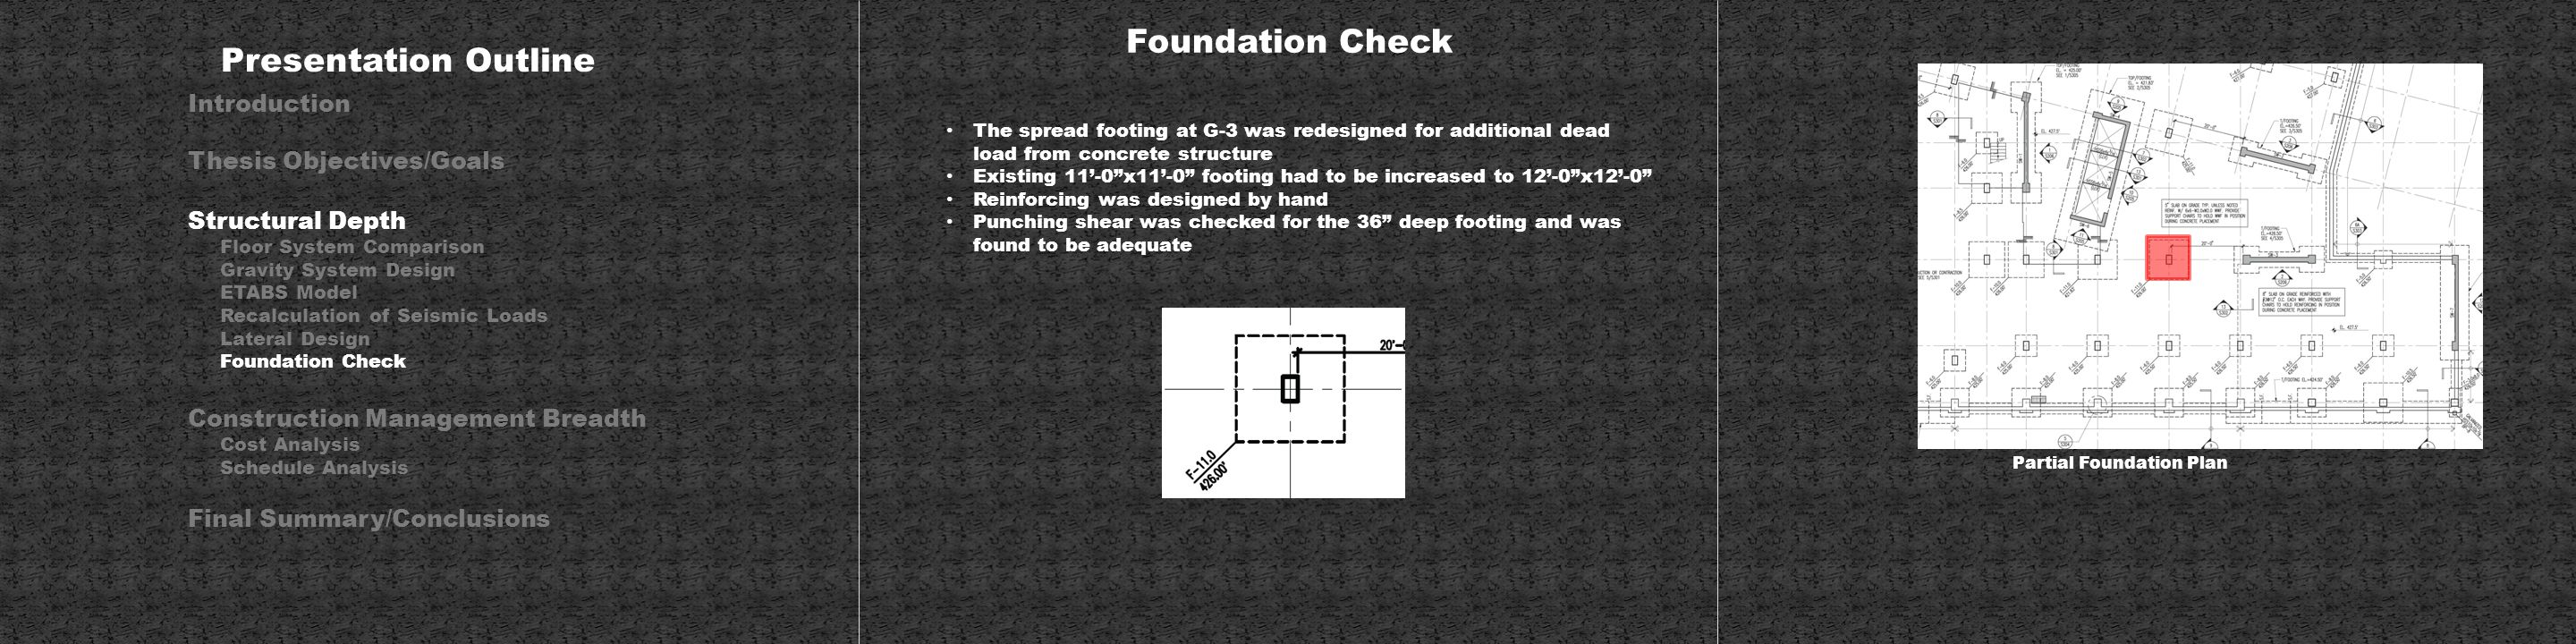 Foundation Check The spread footing at G-3 was redesigned for additional dead load from concrete structure Existing 11'-0 x11'-0 footing had to be increased to 12'-0 x12'-0 Reinforcing was designed by hand Punching shear was checked for the 36 deep footing and was found to be adequate Presentation Outline Introduction Thesis Objectives/Goals Structural Depth Floor System Comparison Gravity System Design ETABS Model Recalculation of Seismic Loads Lateral Design Foundation Check Construction Management Breadth Cost Analysis Schedule Analysis Final Summary/Conclusions Partial Foundation Plan